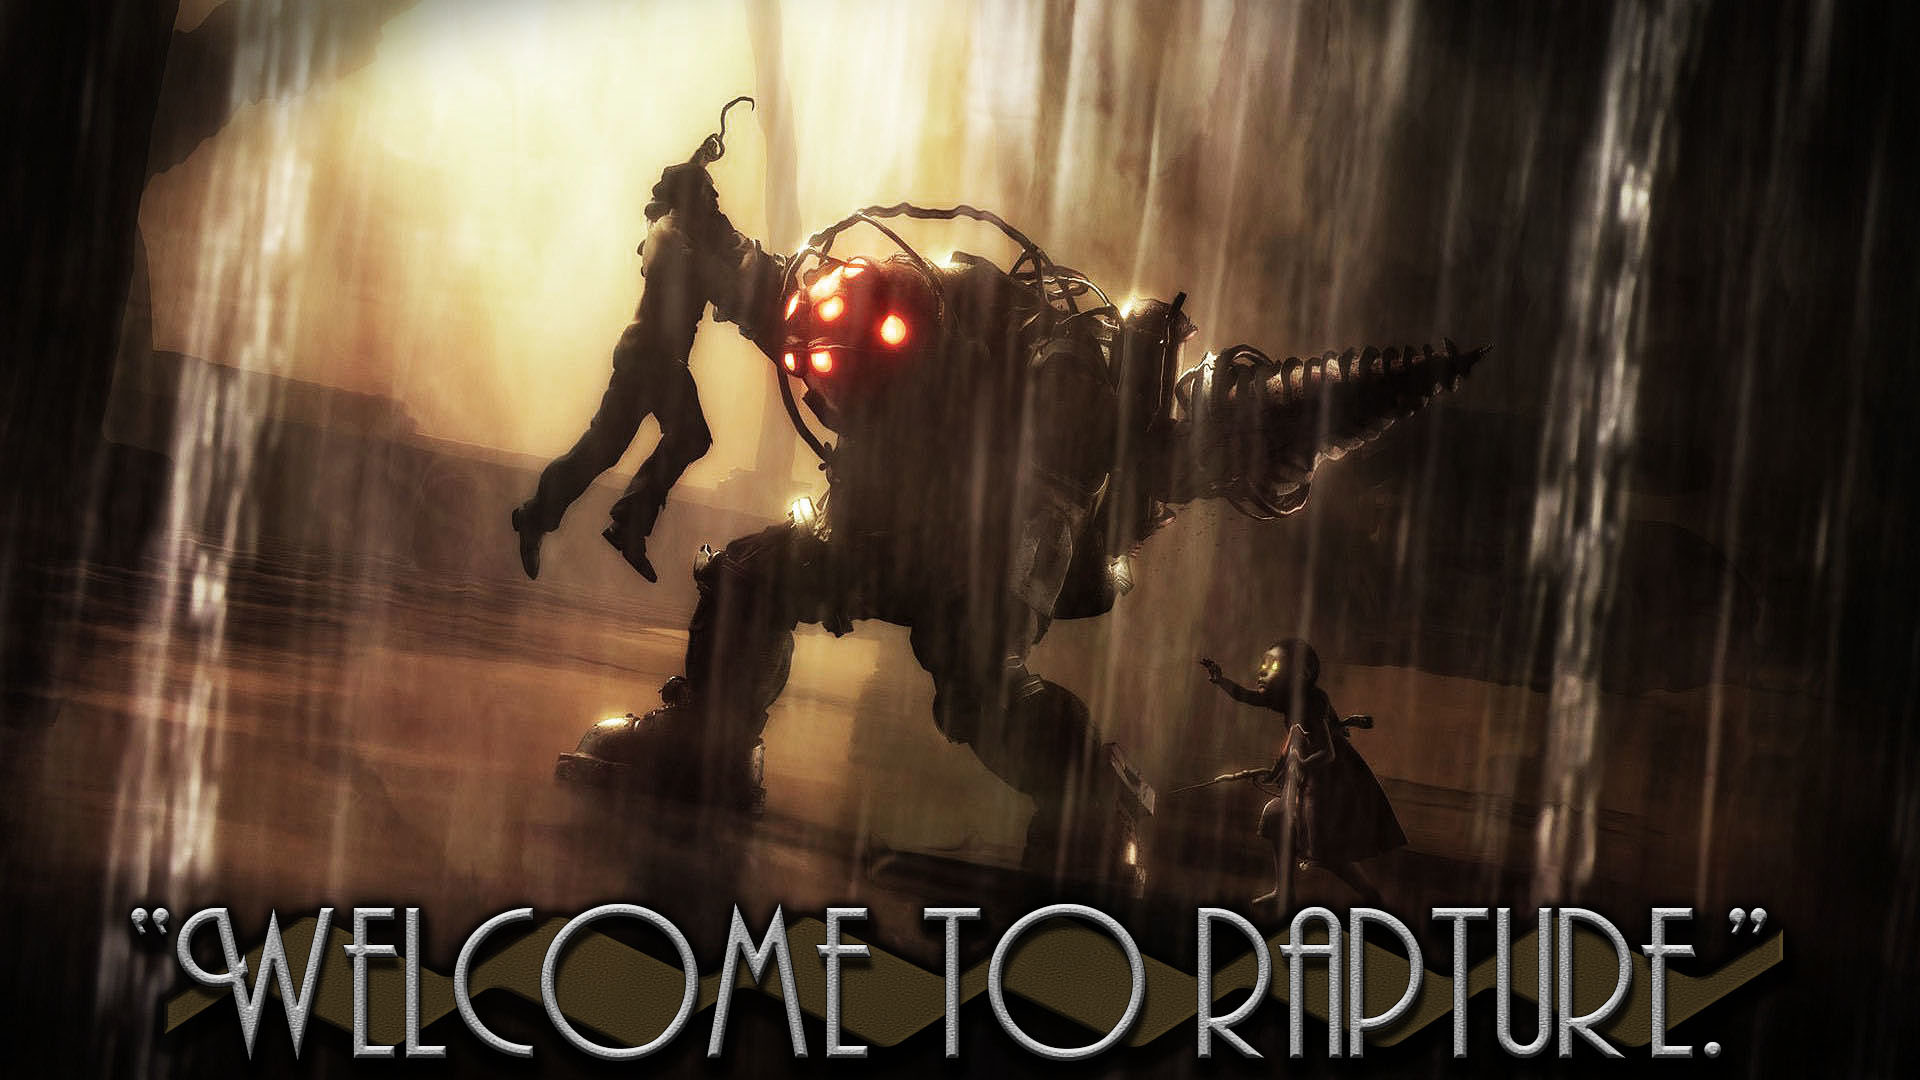 … LeagueWallpapers Welcome to Rapture – Bioshock Wallpaper by  LeagueWallpapers